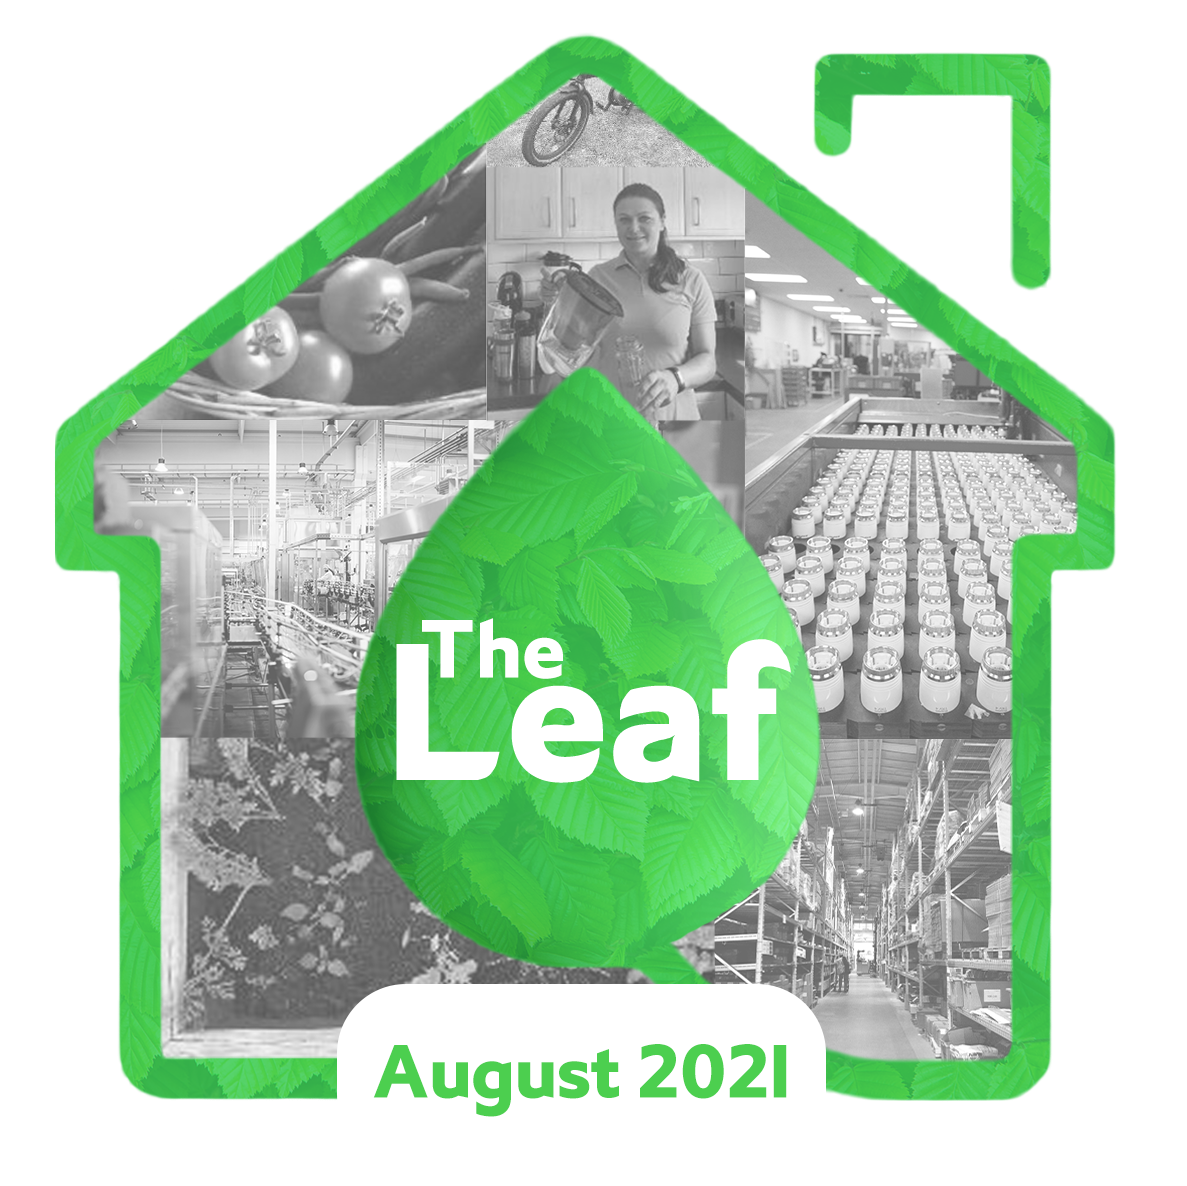 The Leaf Sustainability Blog by Drayton - August 2021